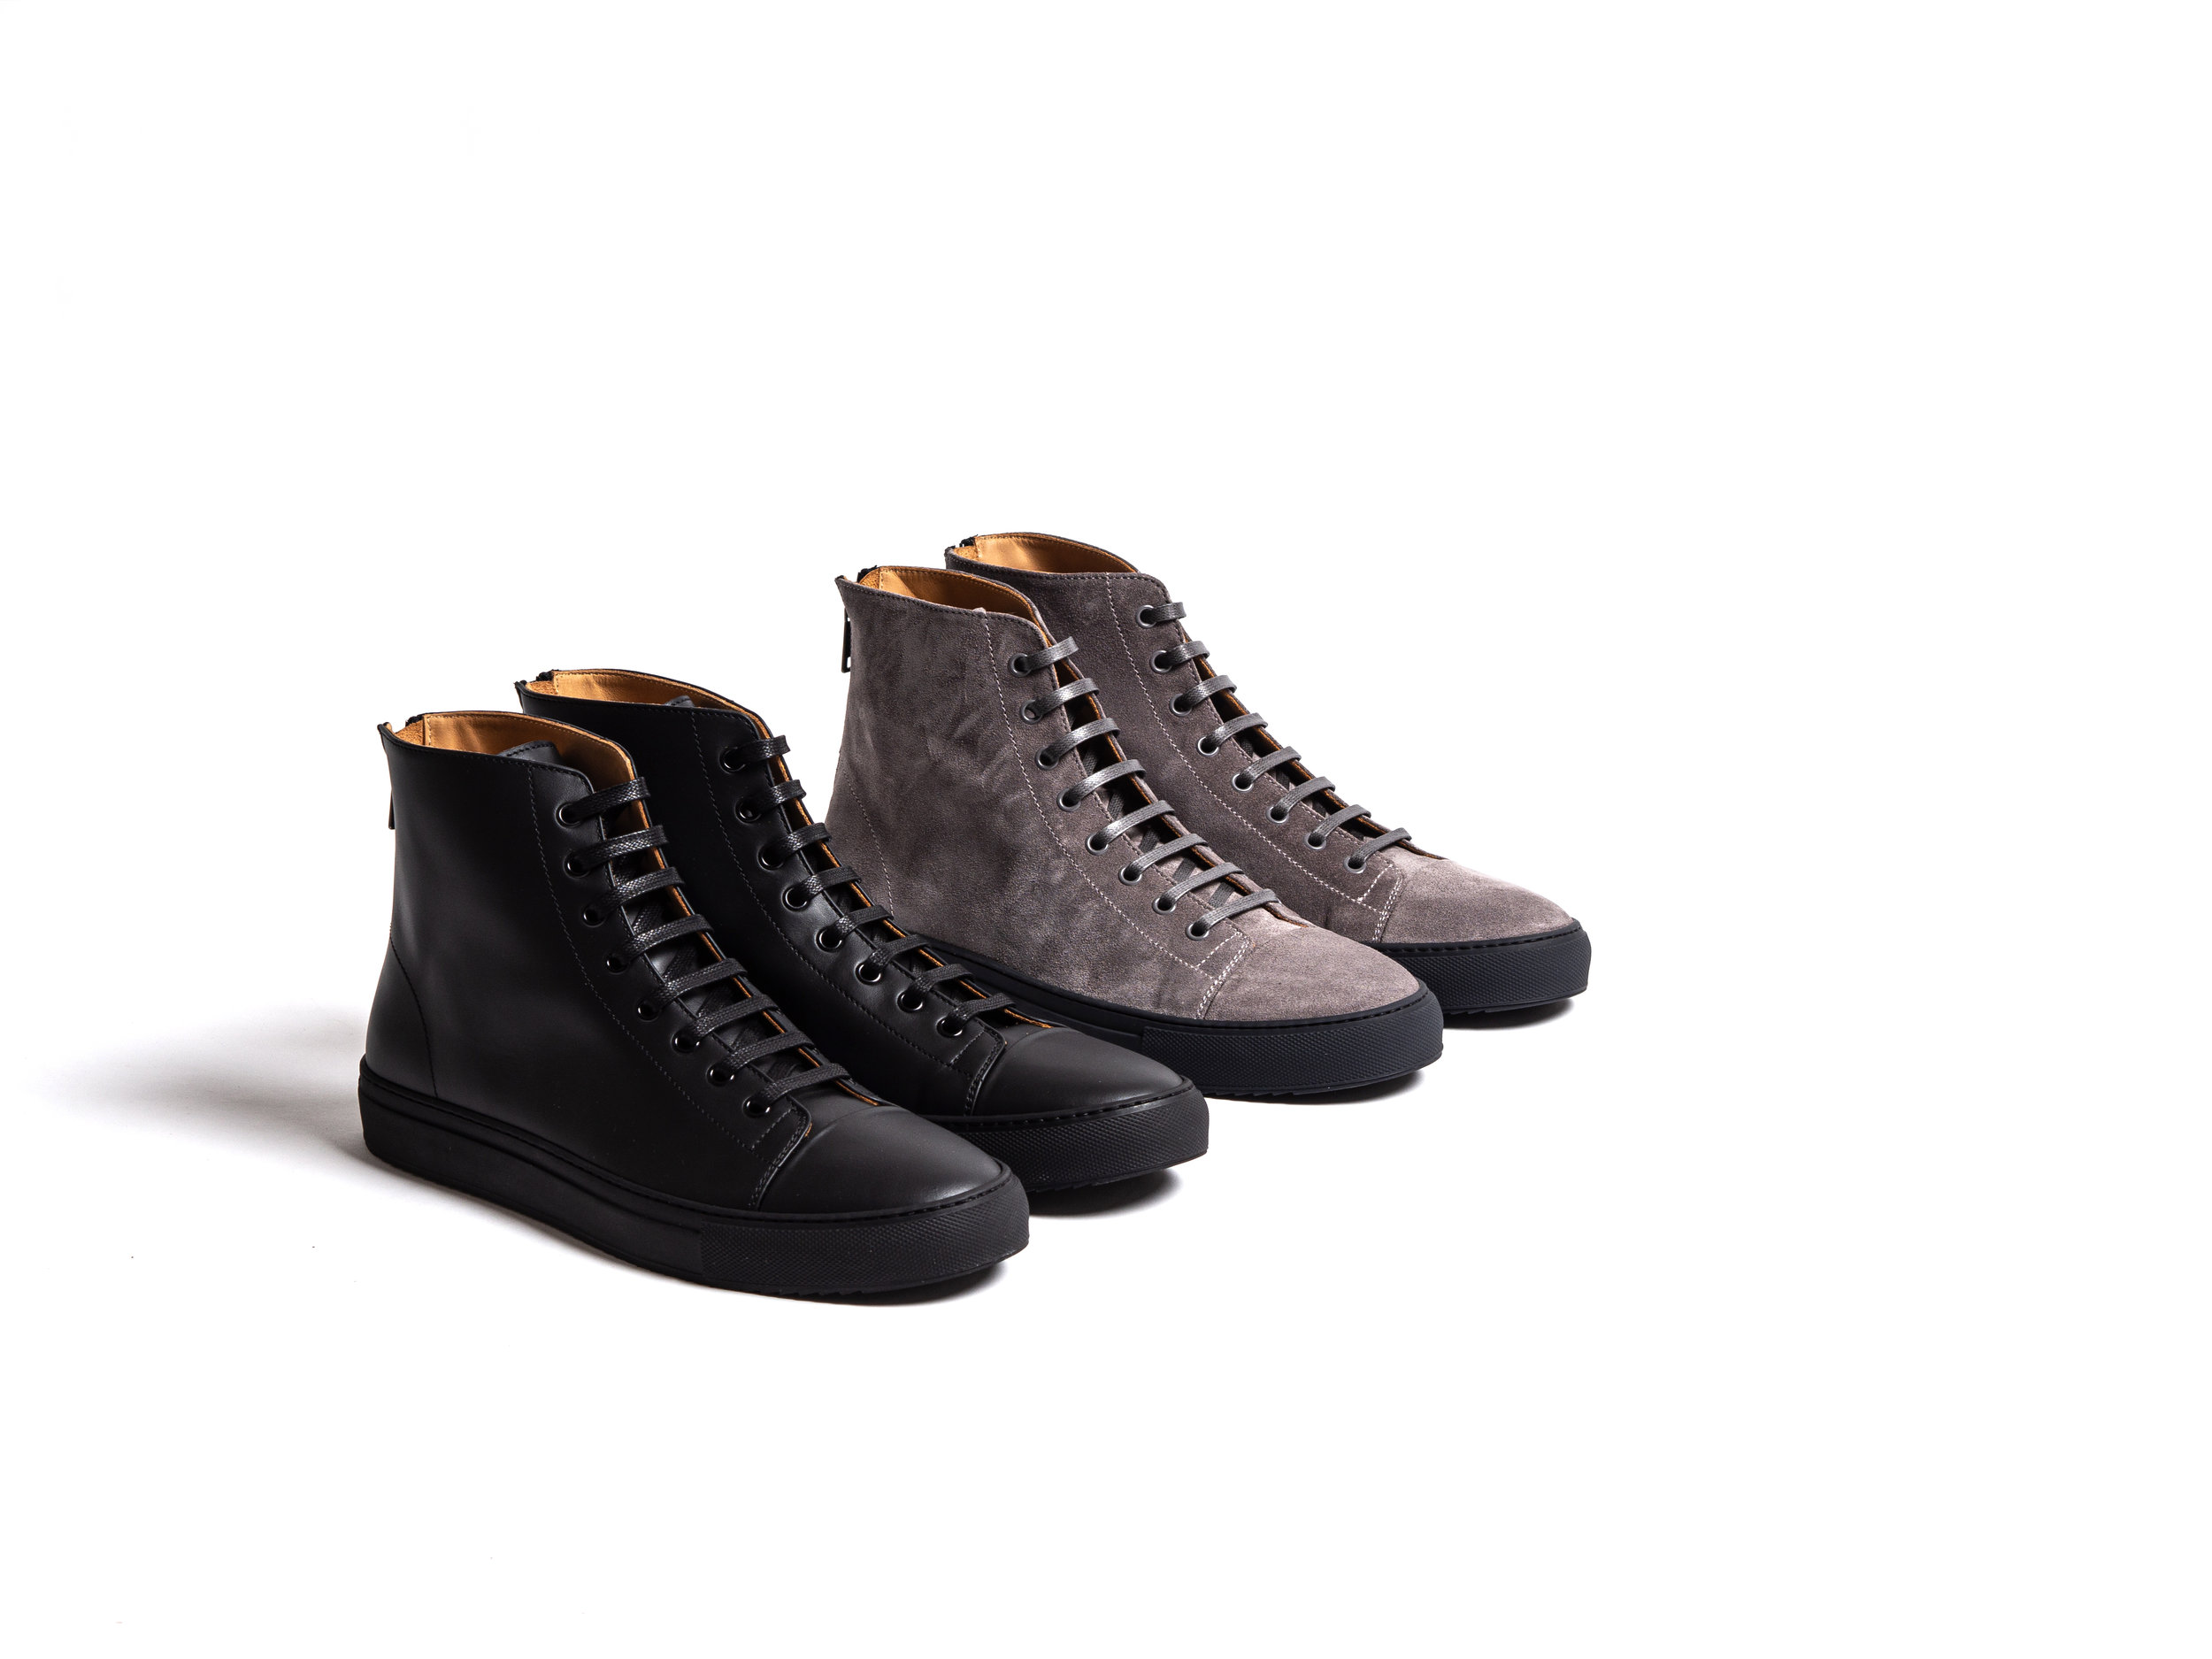 Outclass Italian Sneakers - Outclass' 2019 high-top trainers are a classic with modern styling. The black trainers are made with a luxurious smooth matte calfskin. The grey trainers are made with a finely sueded calf leather. Both styles are fully leather lined and feature zippers on the back for easy on and off. The Outclass high-top trainers are both made in Italy.